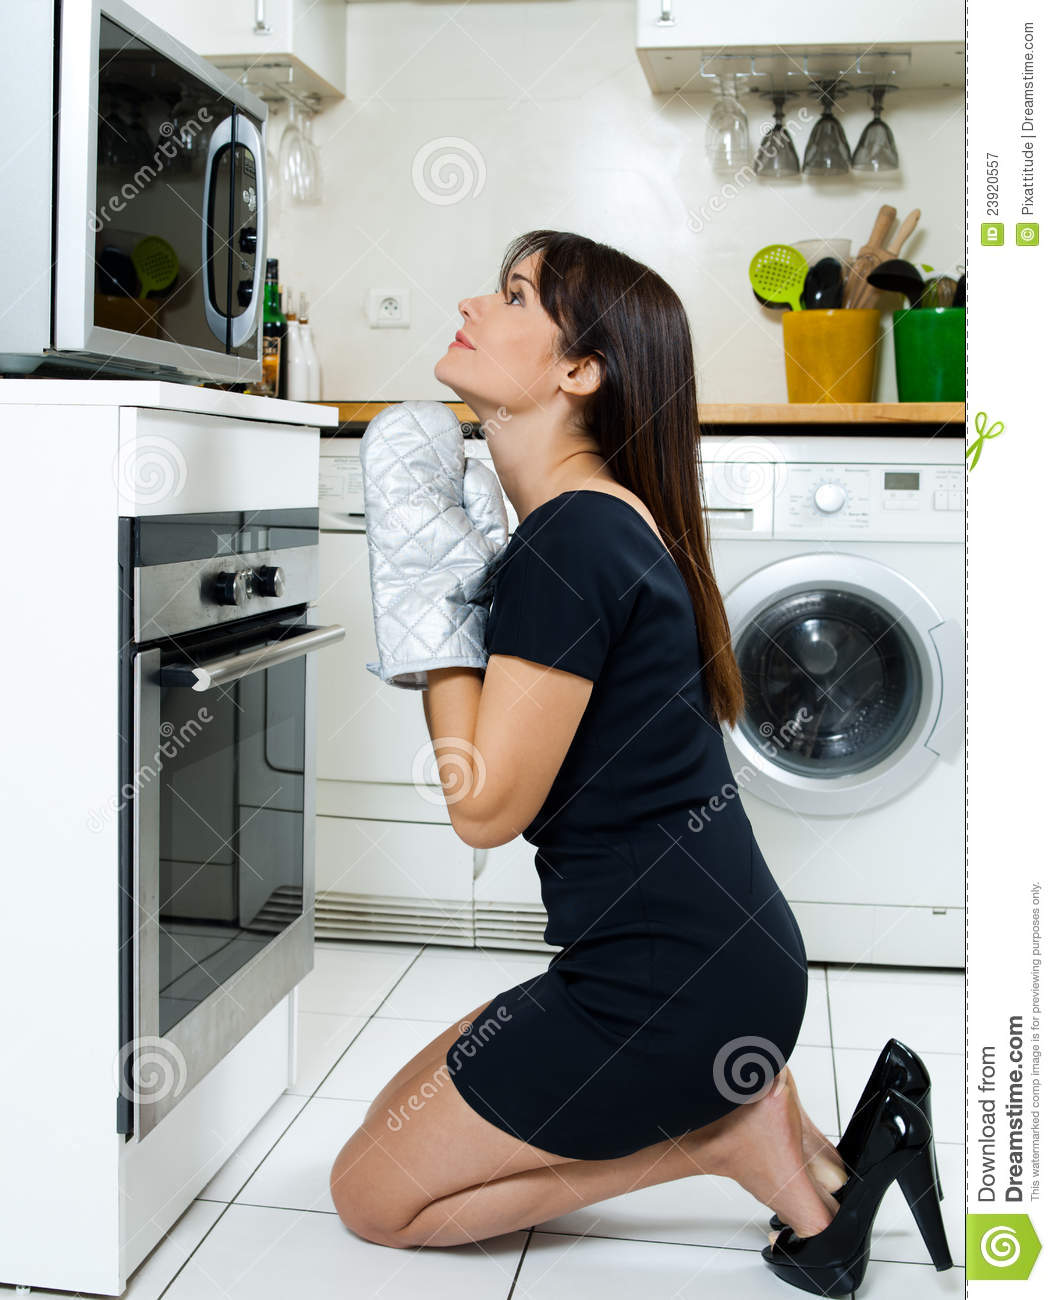 Black Woman Cooking In Kitchen